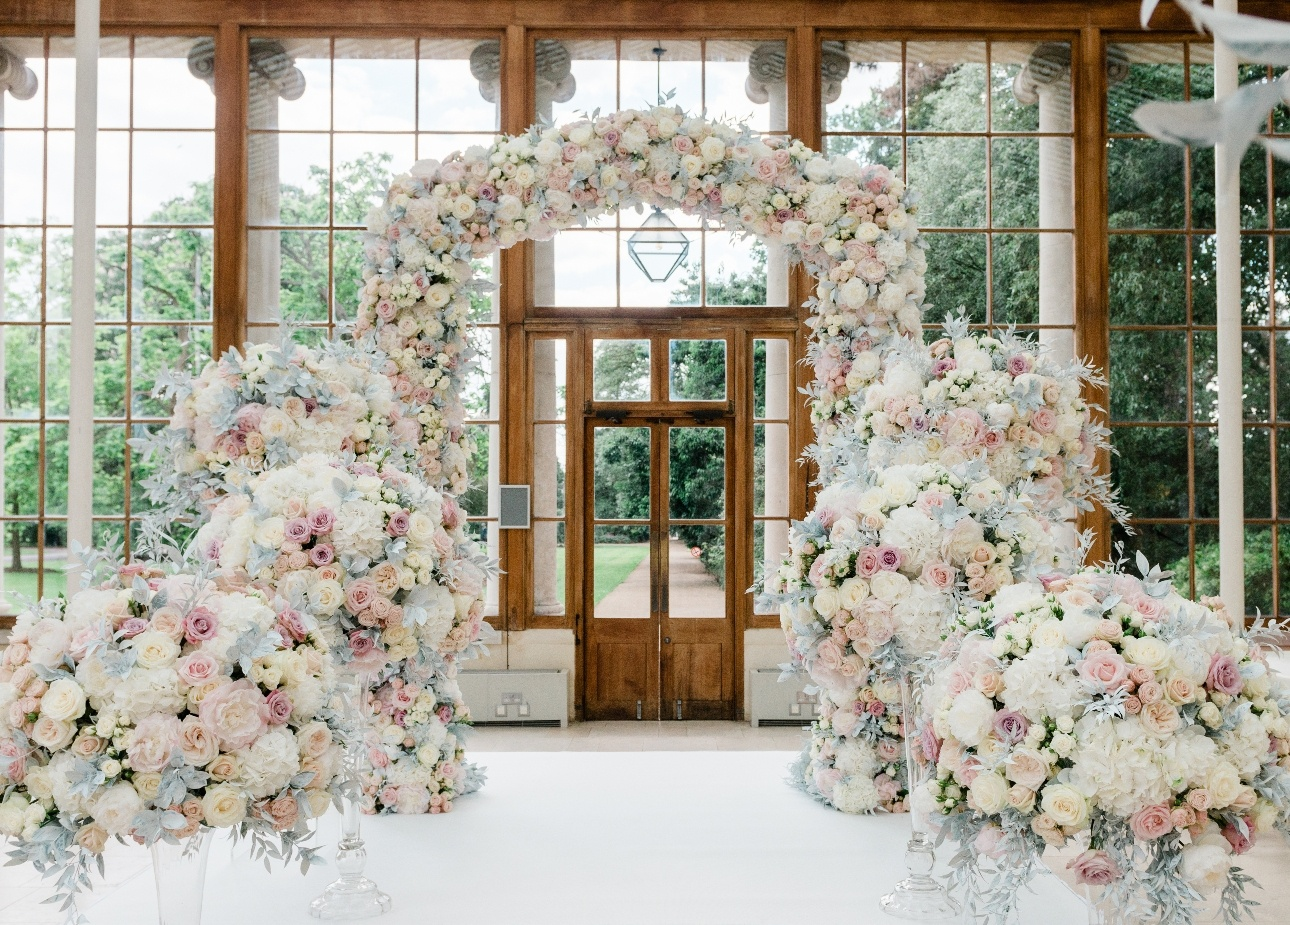 floral arch in conservatory